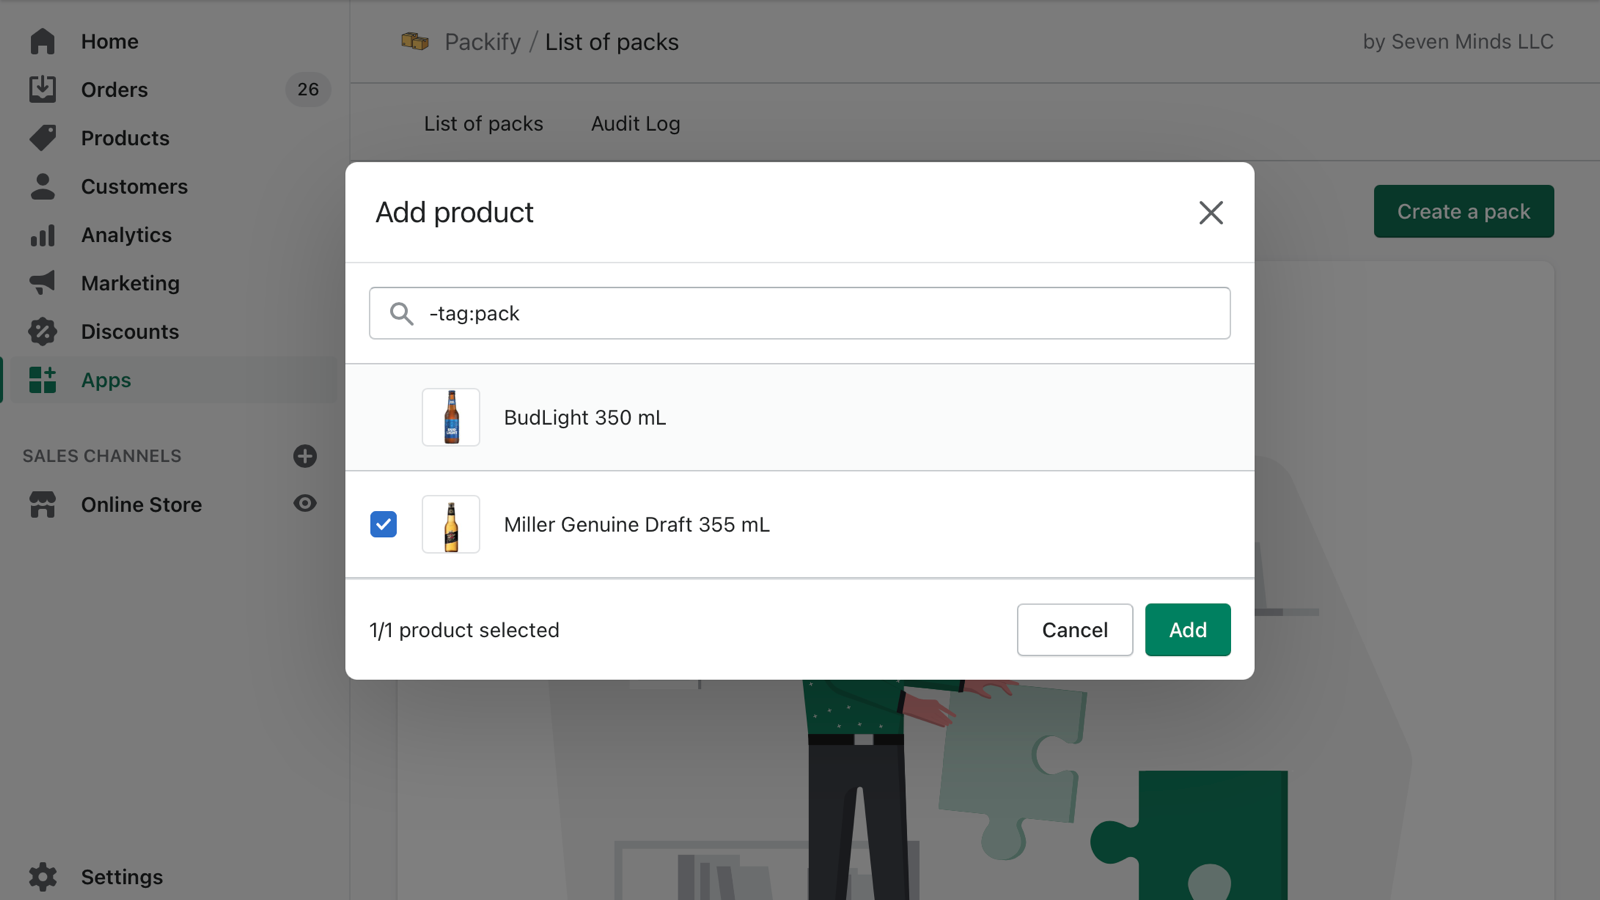 Select a product to create packs for